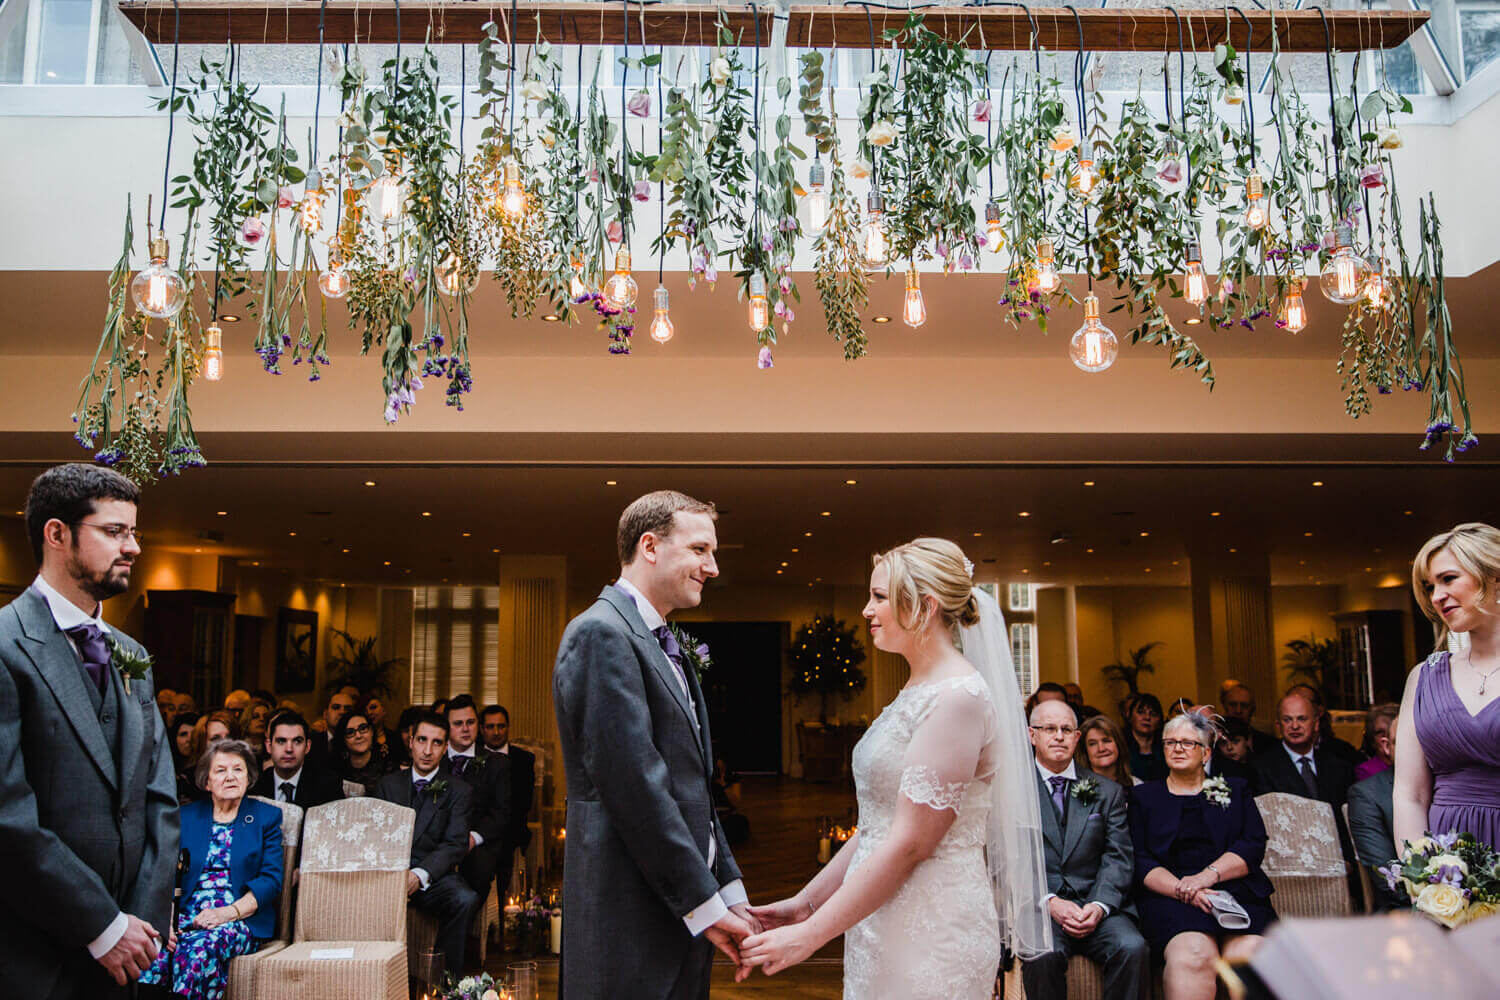 Bride and groom exchanging vows and nuptials while bridal party look on